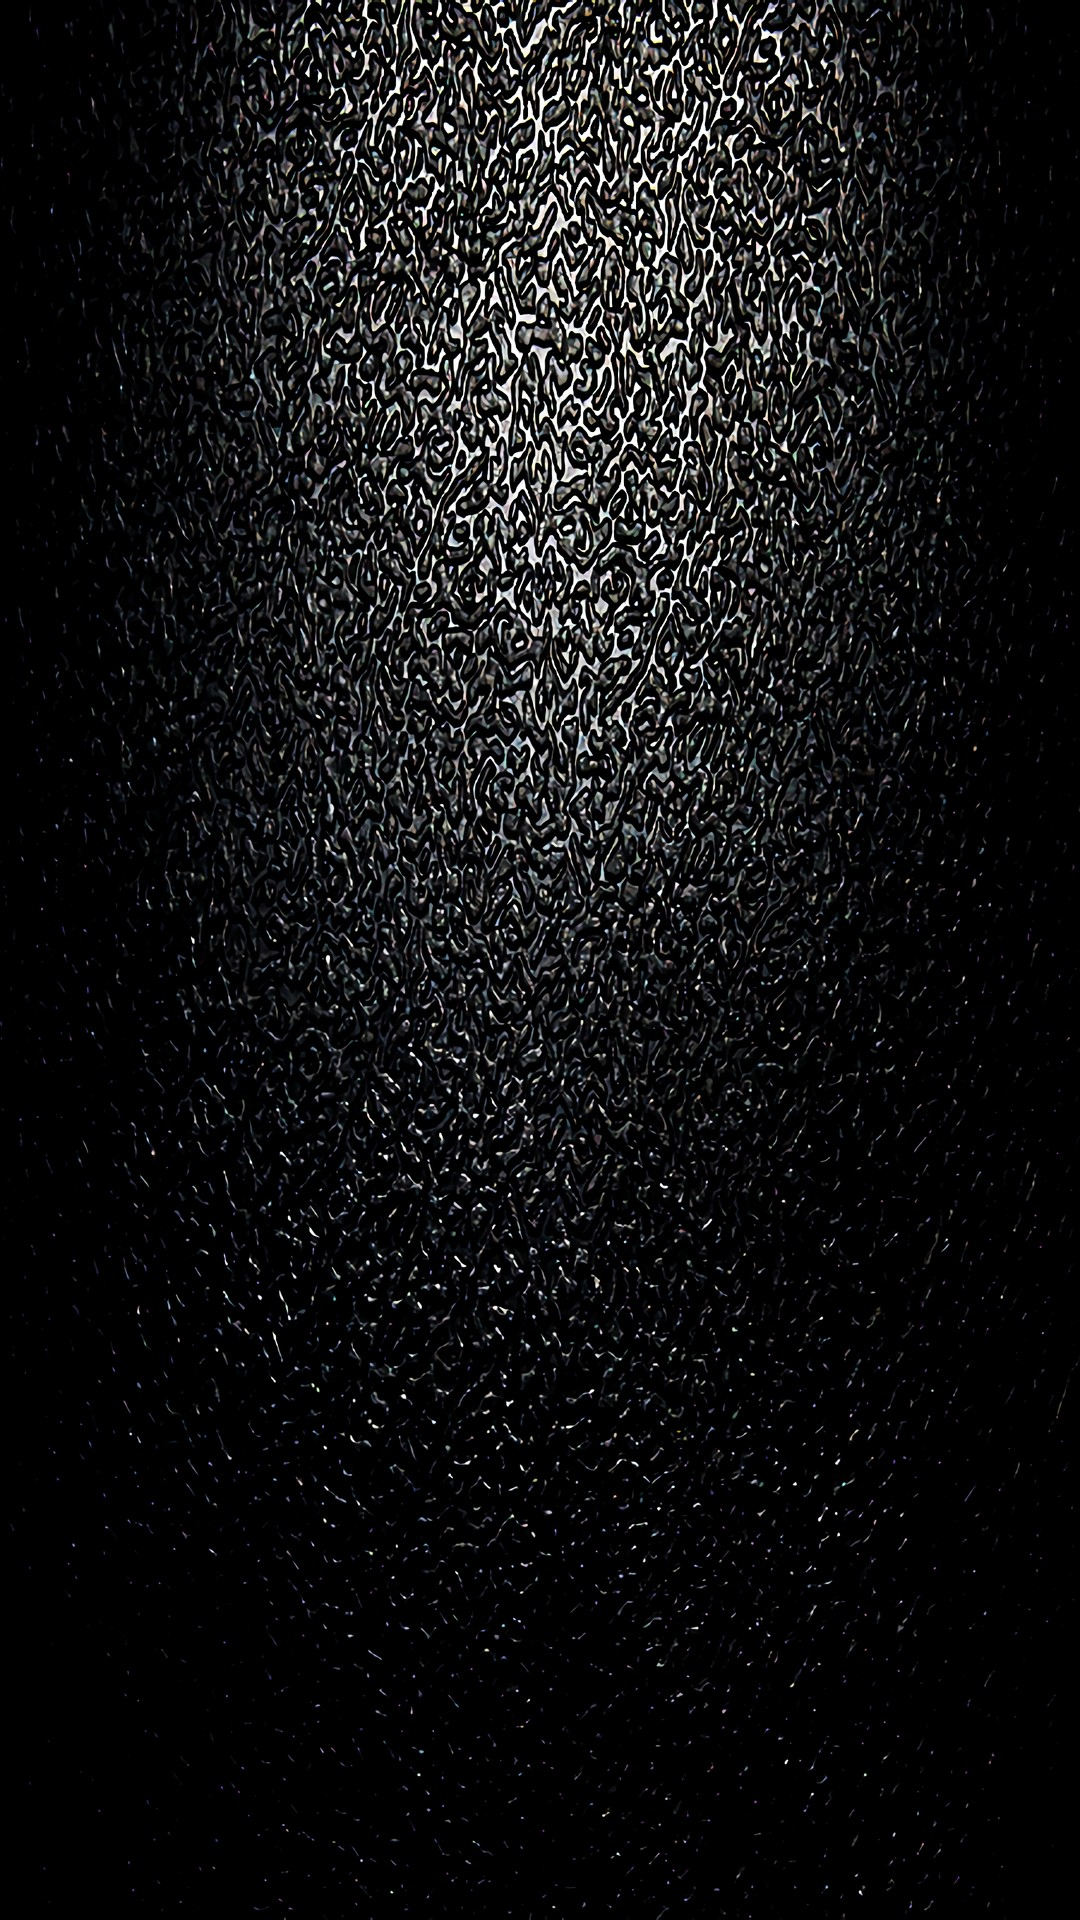 Black 1 Wallpaper 1080x1920